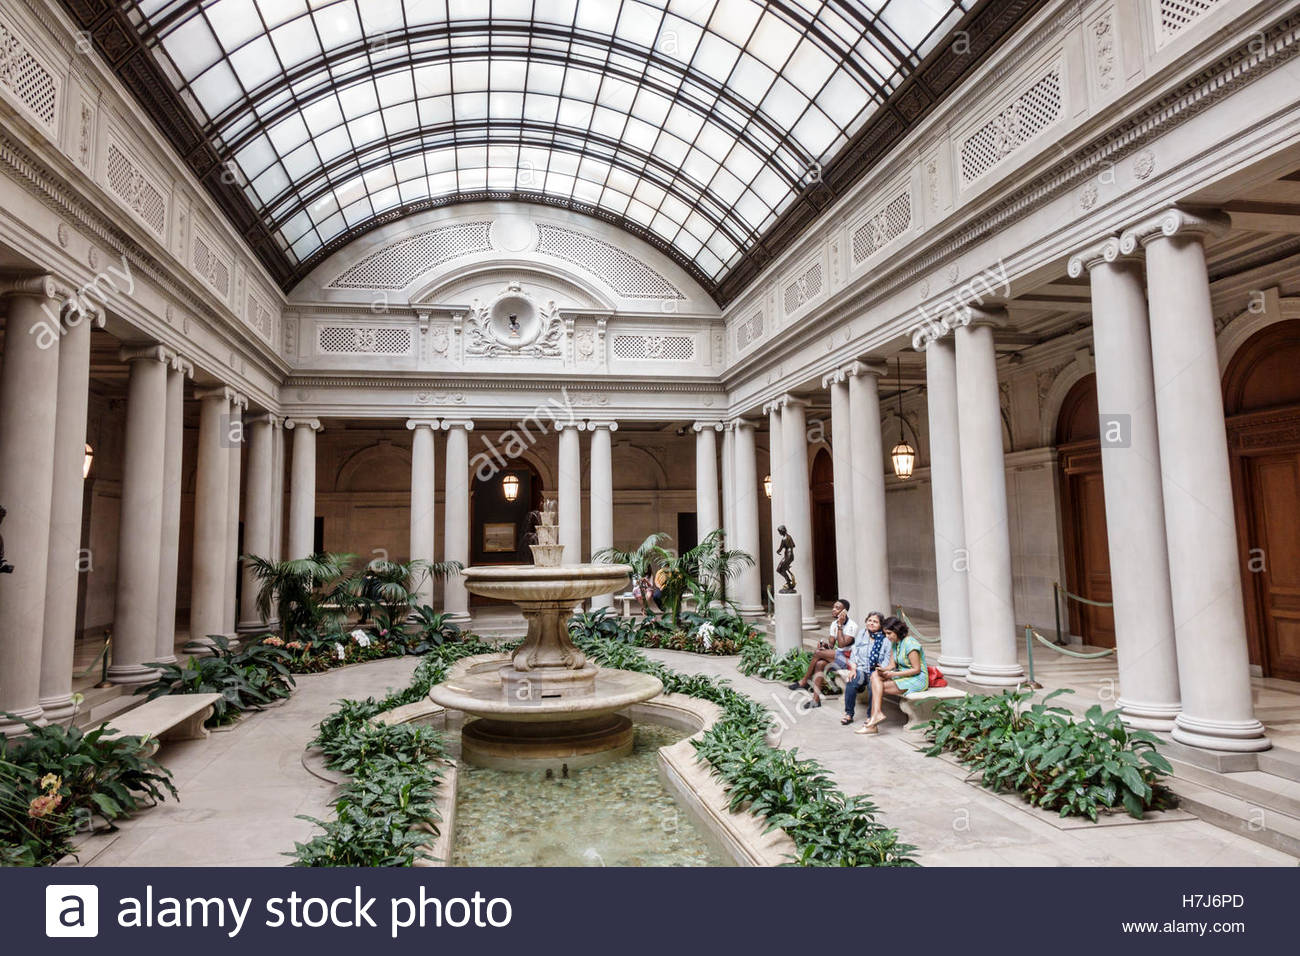 An educational and enjoyable trip to the frick collection museum